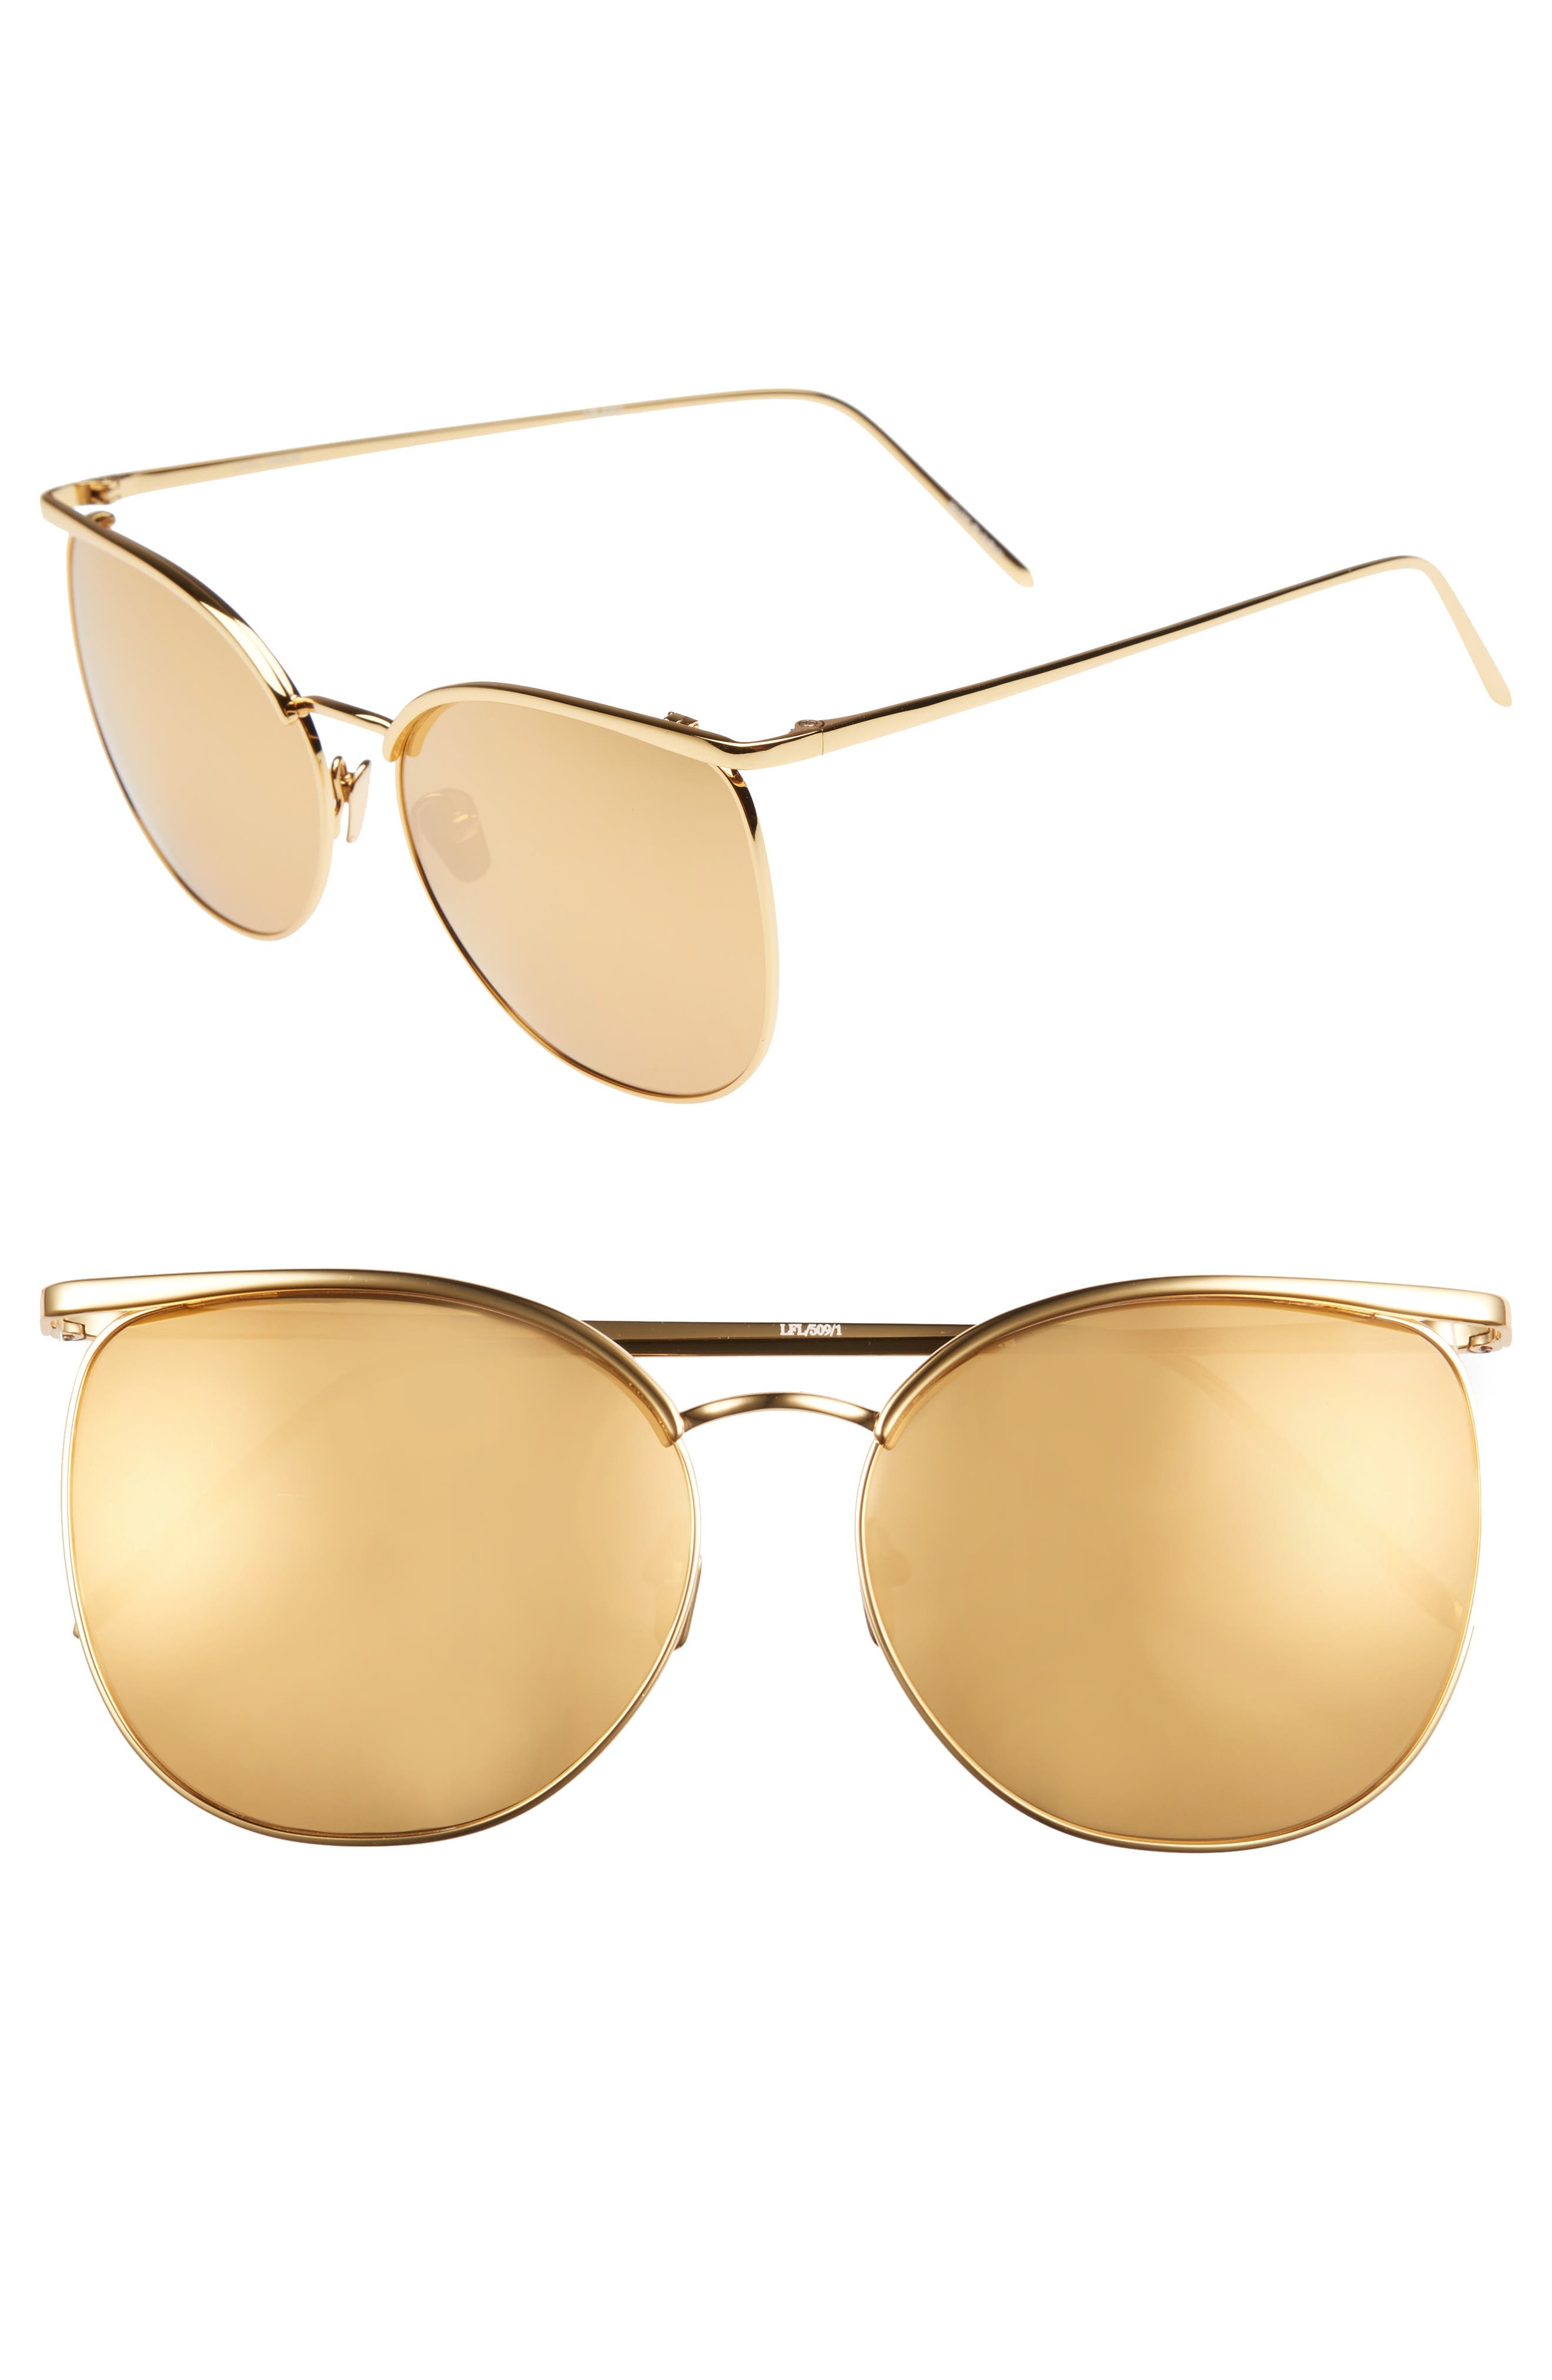 59mm Mirrored 22 Karat Gold Trim Sunglasses,                             Main thumbnail 1, color,                             710